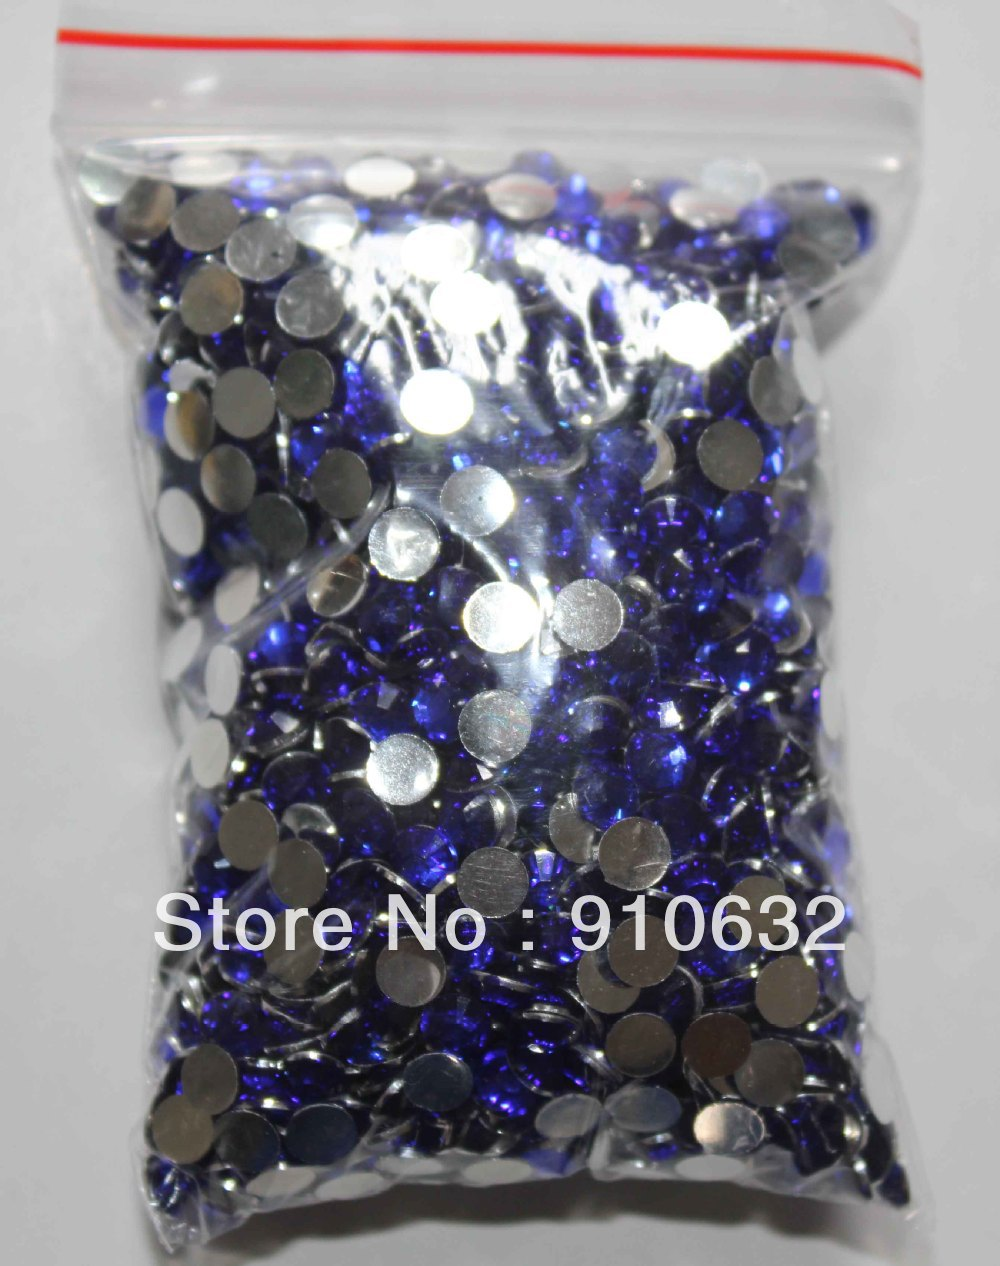 Arts and crafts jewels - Rhinestone Jewels For Crafts Rhinestone Jewels For Crafts Arts And Crafts Rhinestones Rhinestone Jewels For